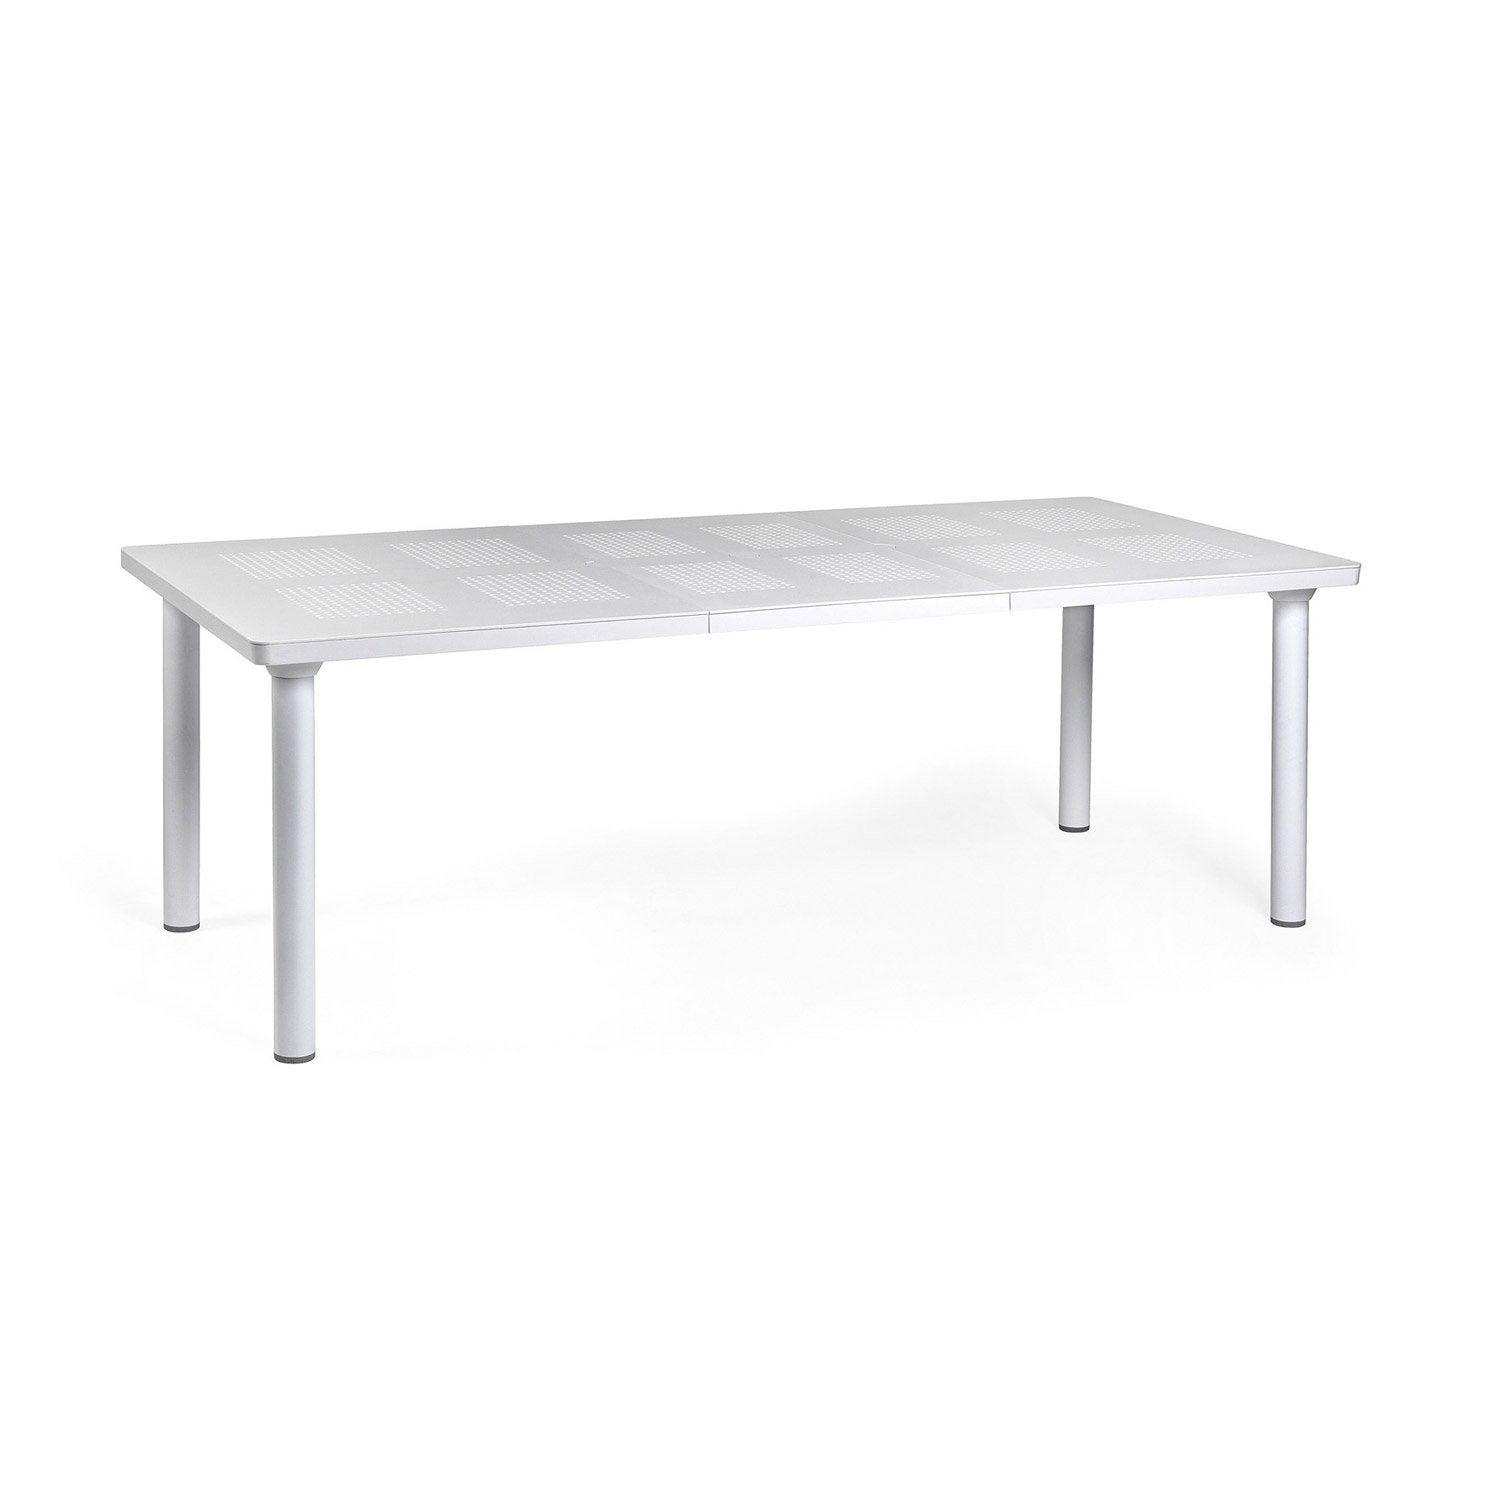 Table de jardin libeccio rectangulaire blanc 8 personnes leroy merlin - Leroy merlin table jardin ...